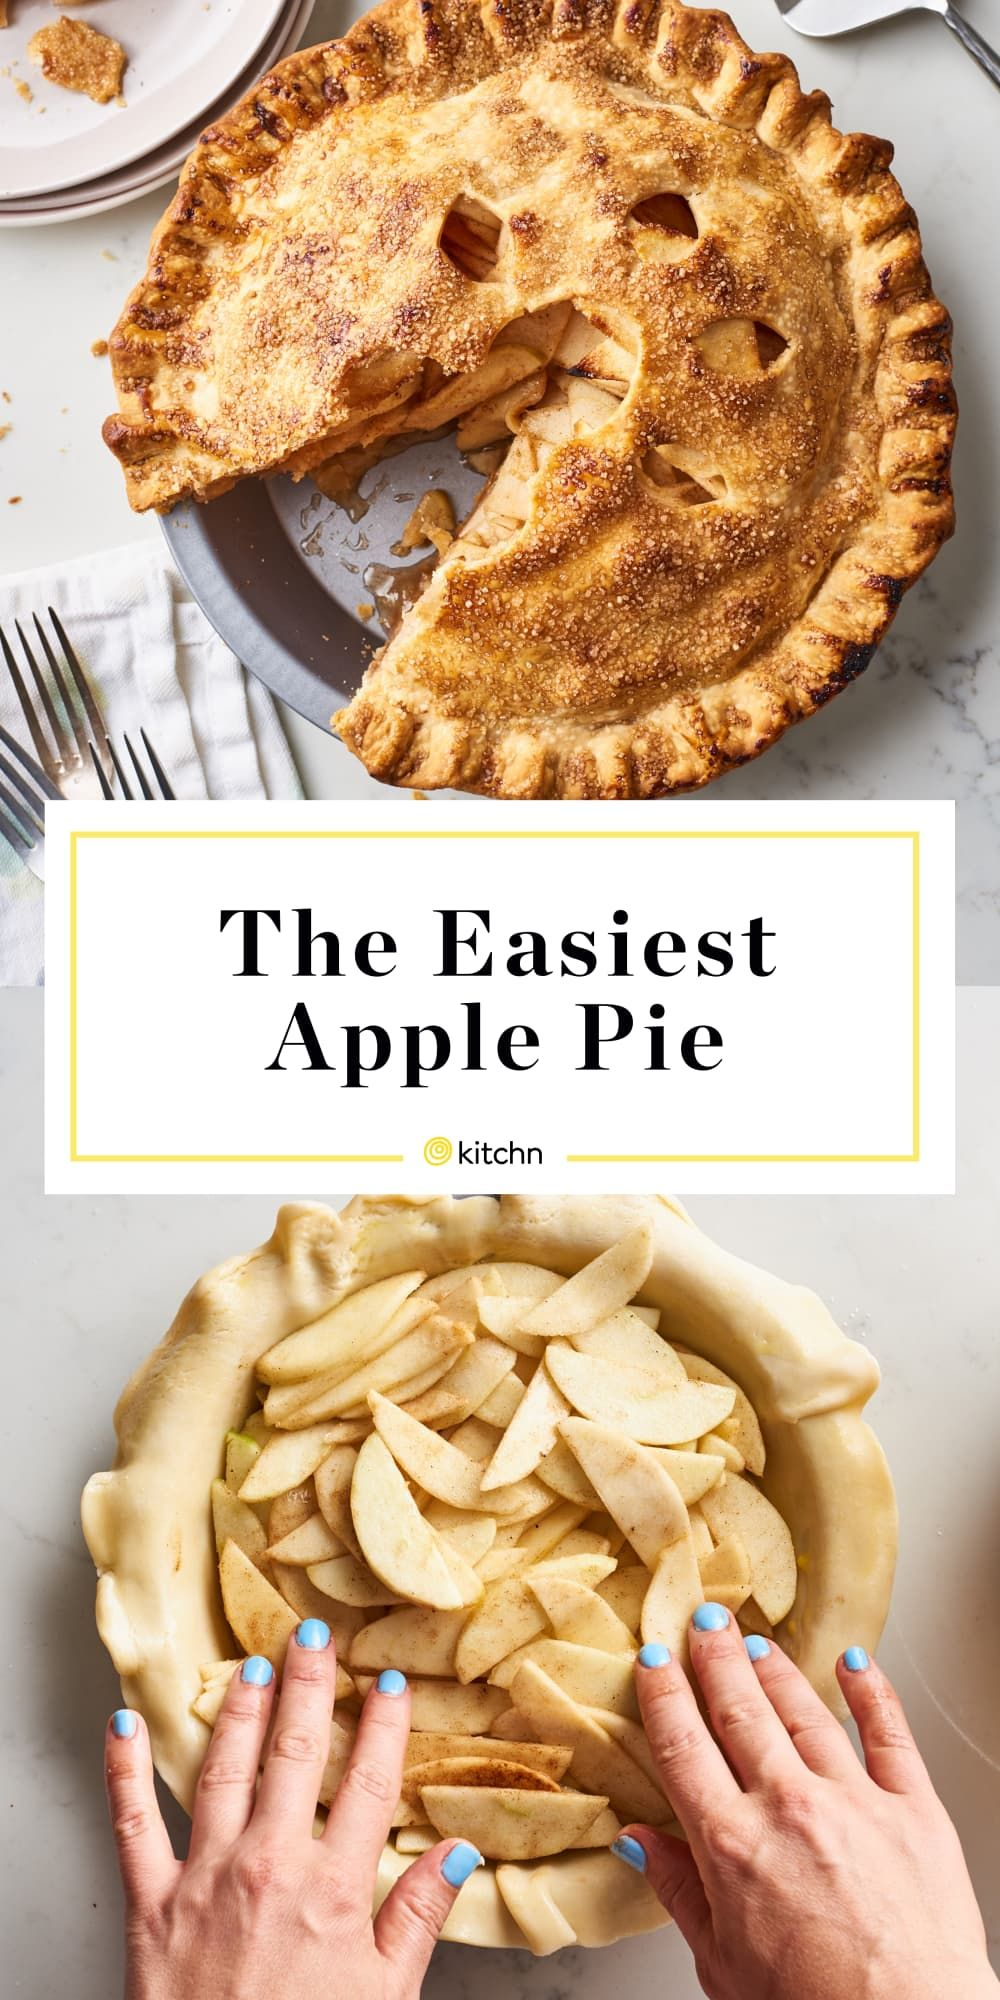 Here It Is: An Apple Pie You Can Make on a Weeknig